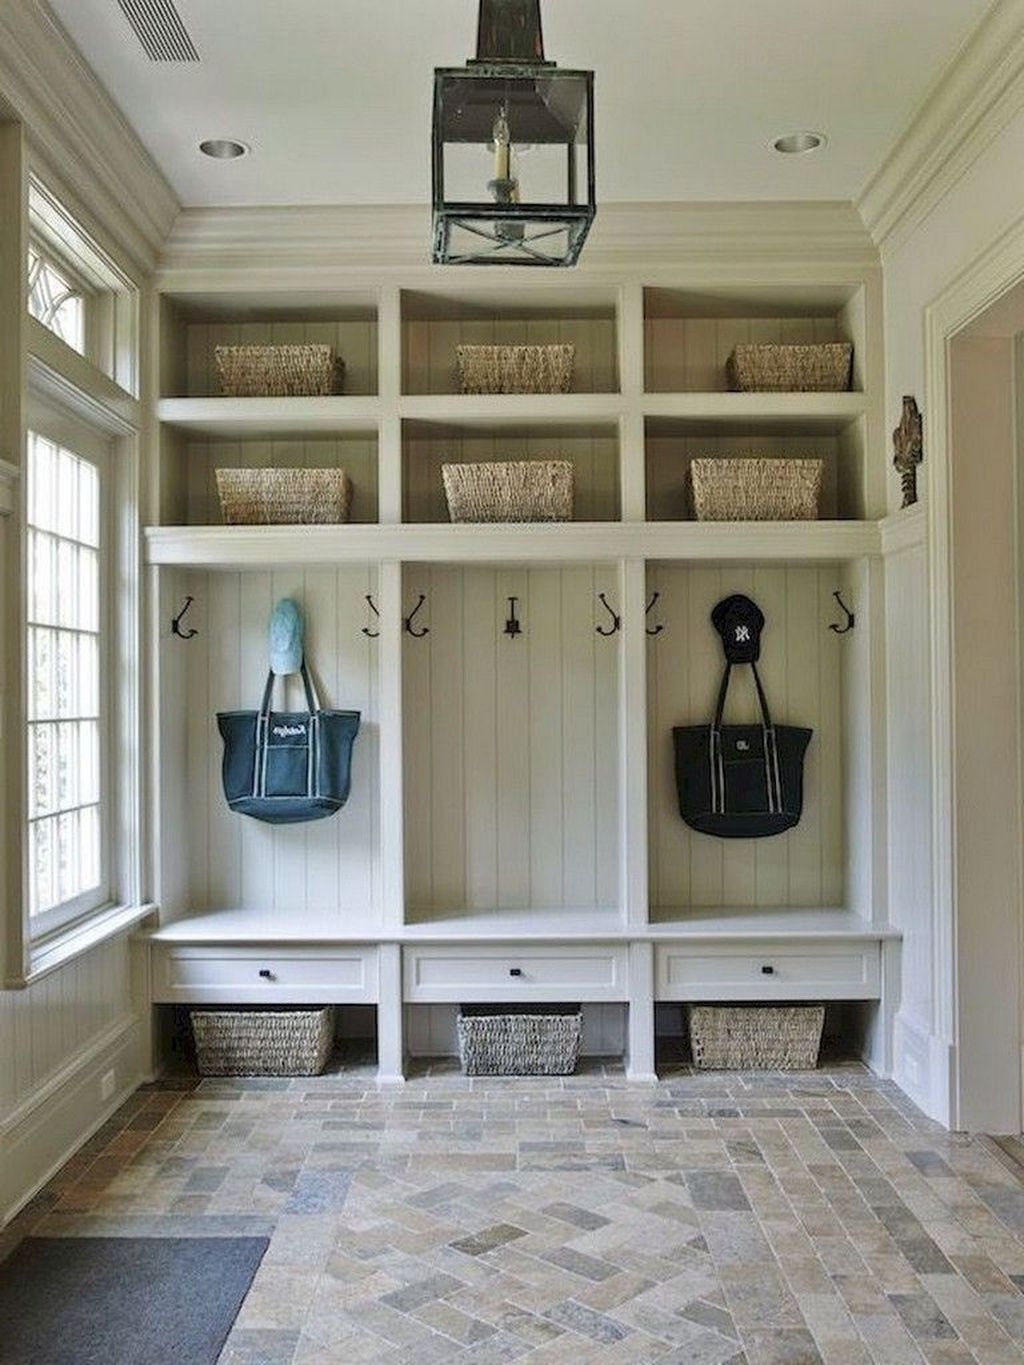 Delightful Mudroom Storage Design Ideas To Have Soon19